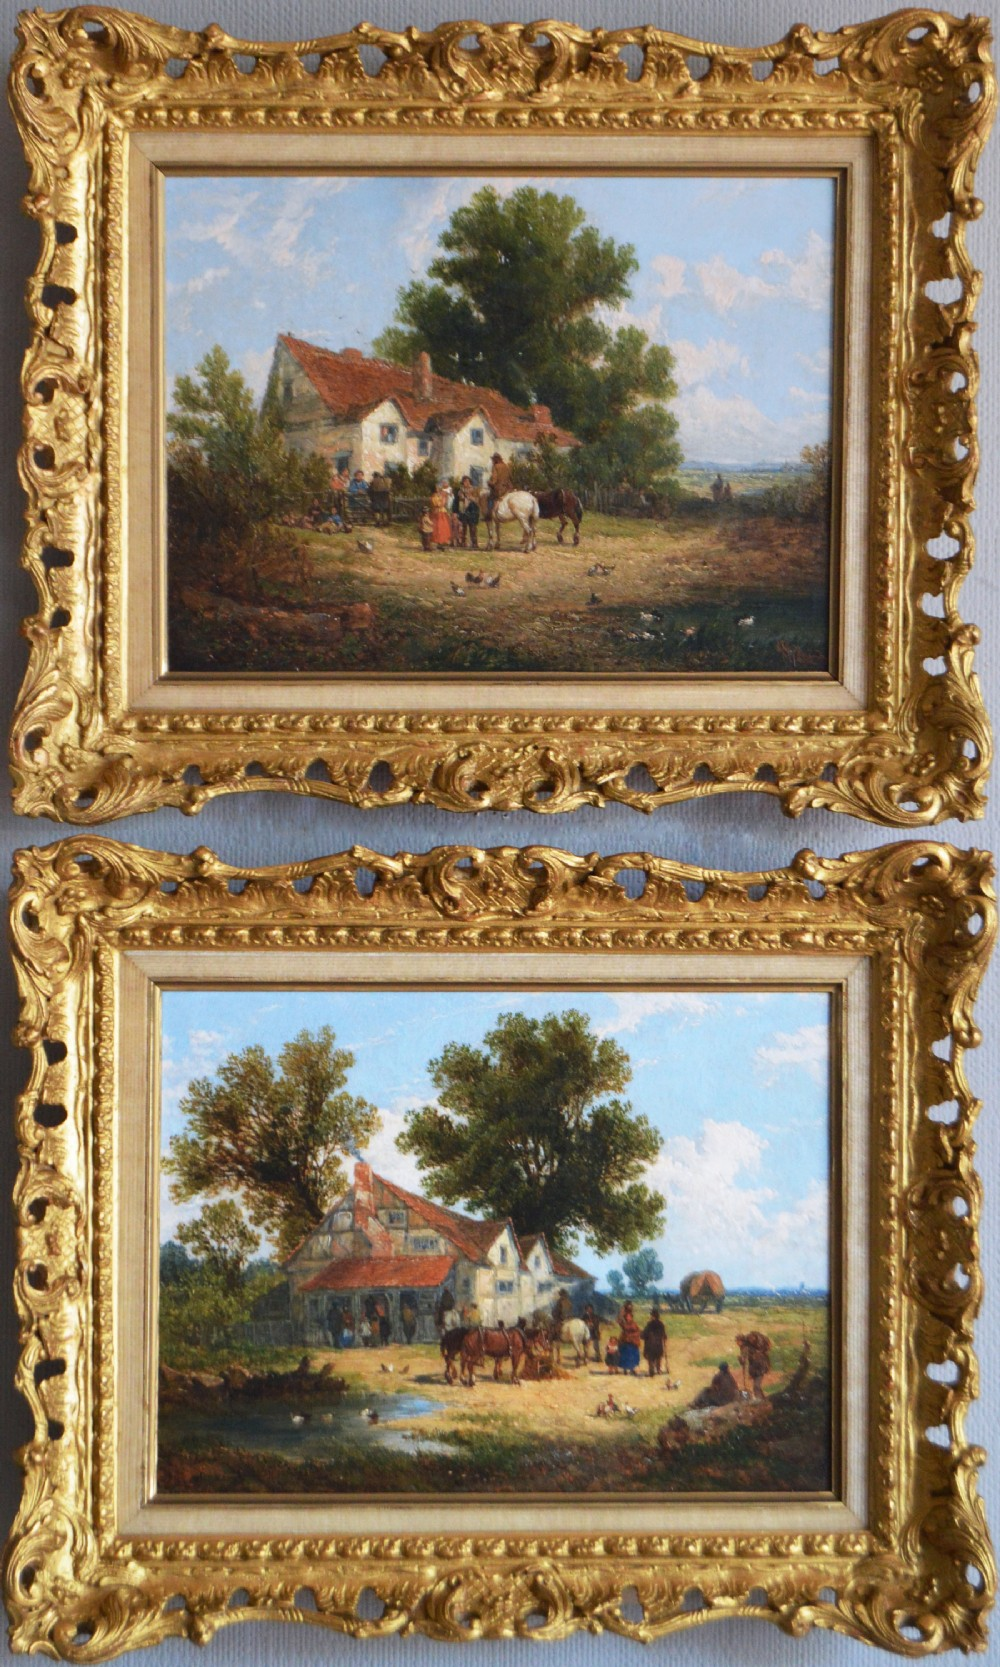 landscape oil paintings of a village by john holland snr